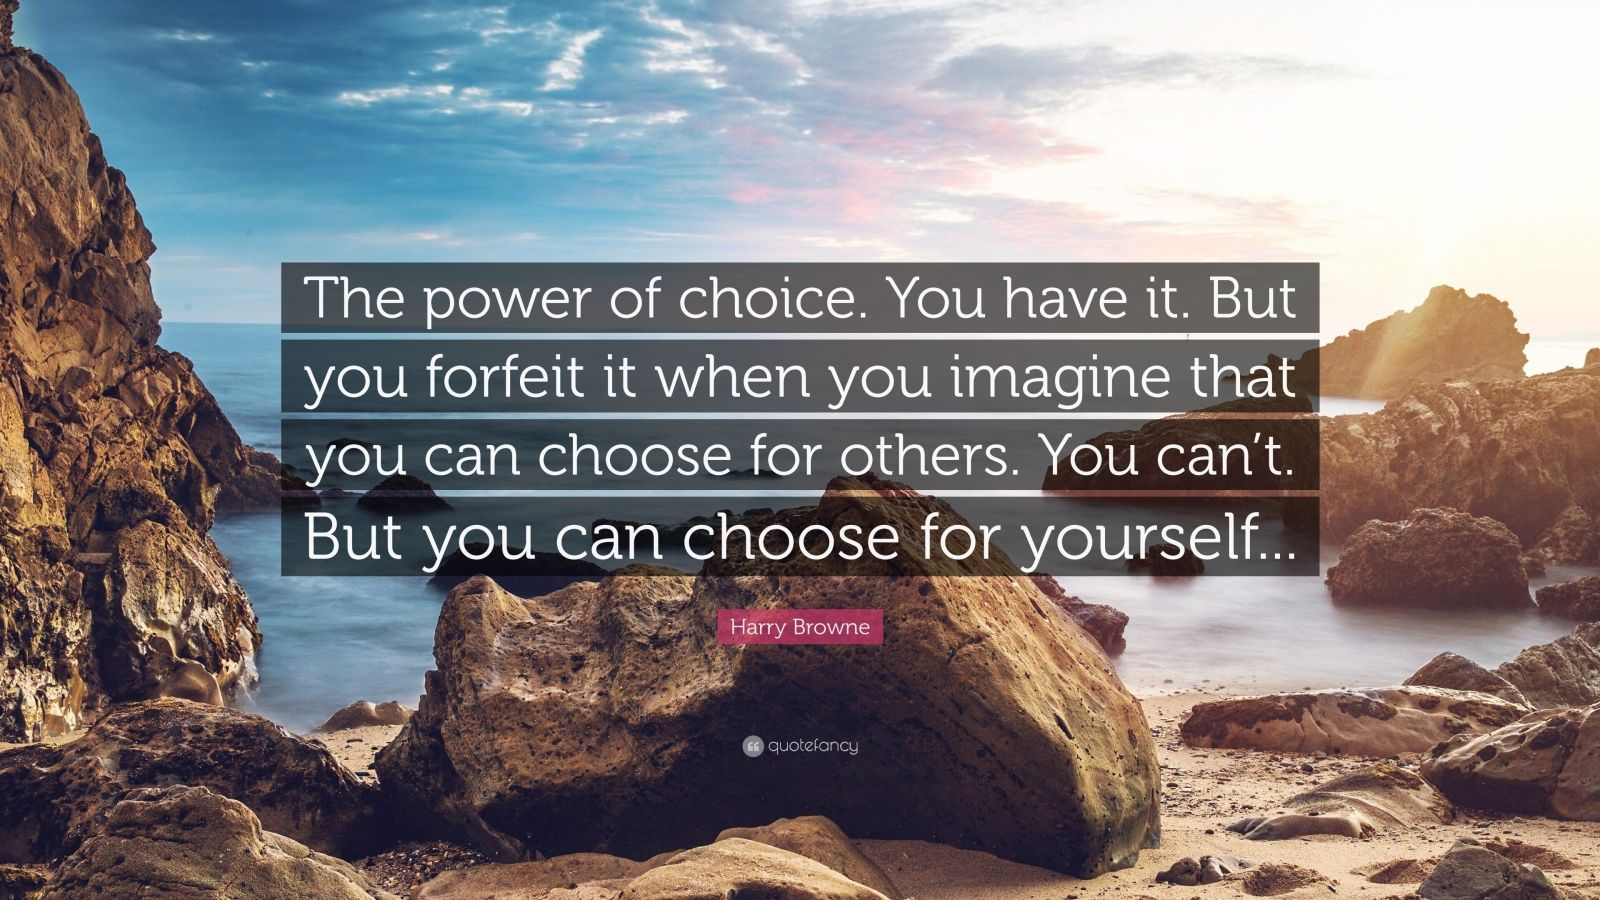 "Harry Browne Quote: ""The power of choice. You have it. But you forfeit it when you imagine that you can choose for others. You can't. But you can choose for yourself..."""